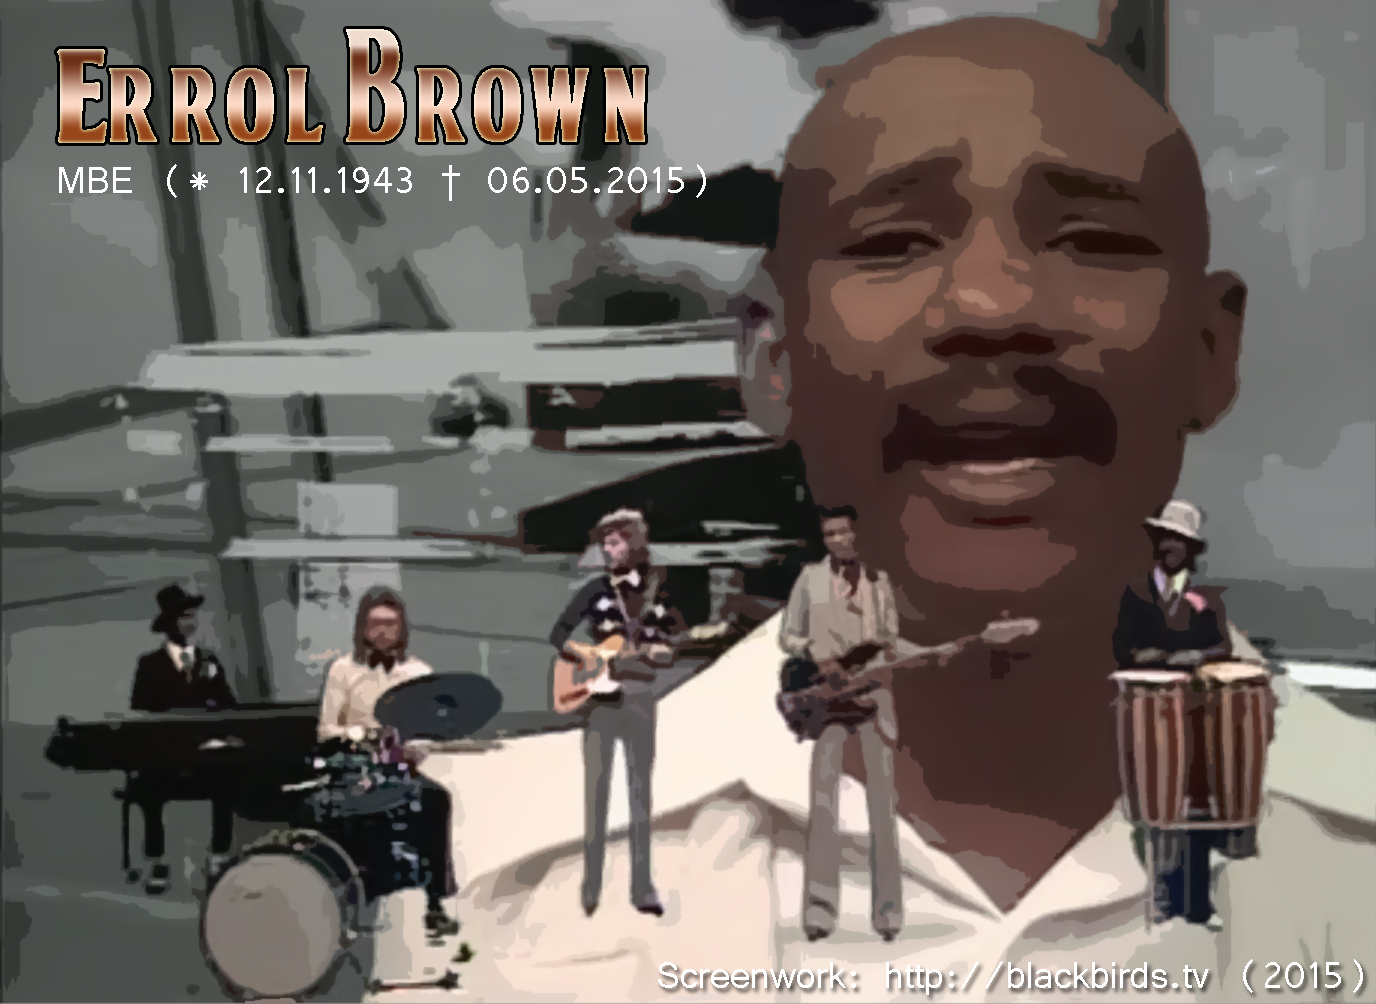 Errol Brown_MBE (* 12.11.1943 † 06.05.2015)